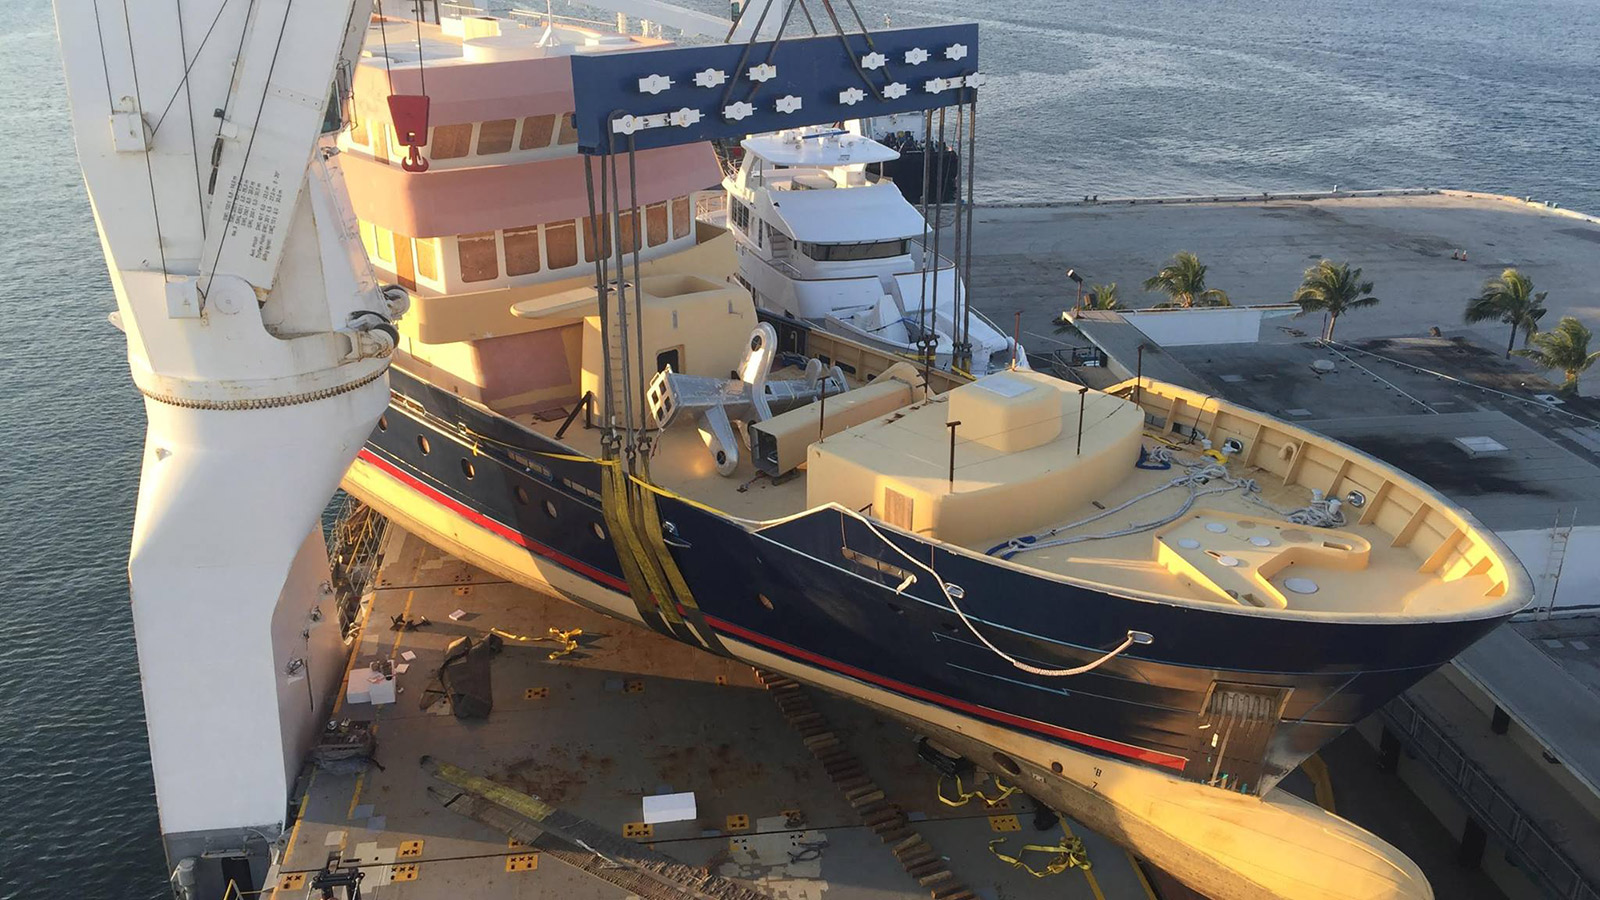 the-foredeck-of-the-in-build-newcastle-marine-explorer-yacht-ulucitcan